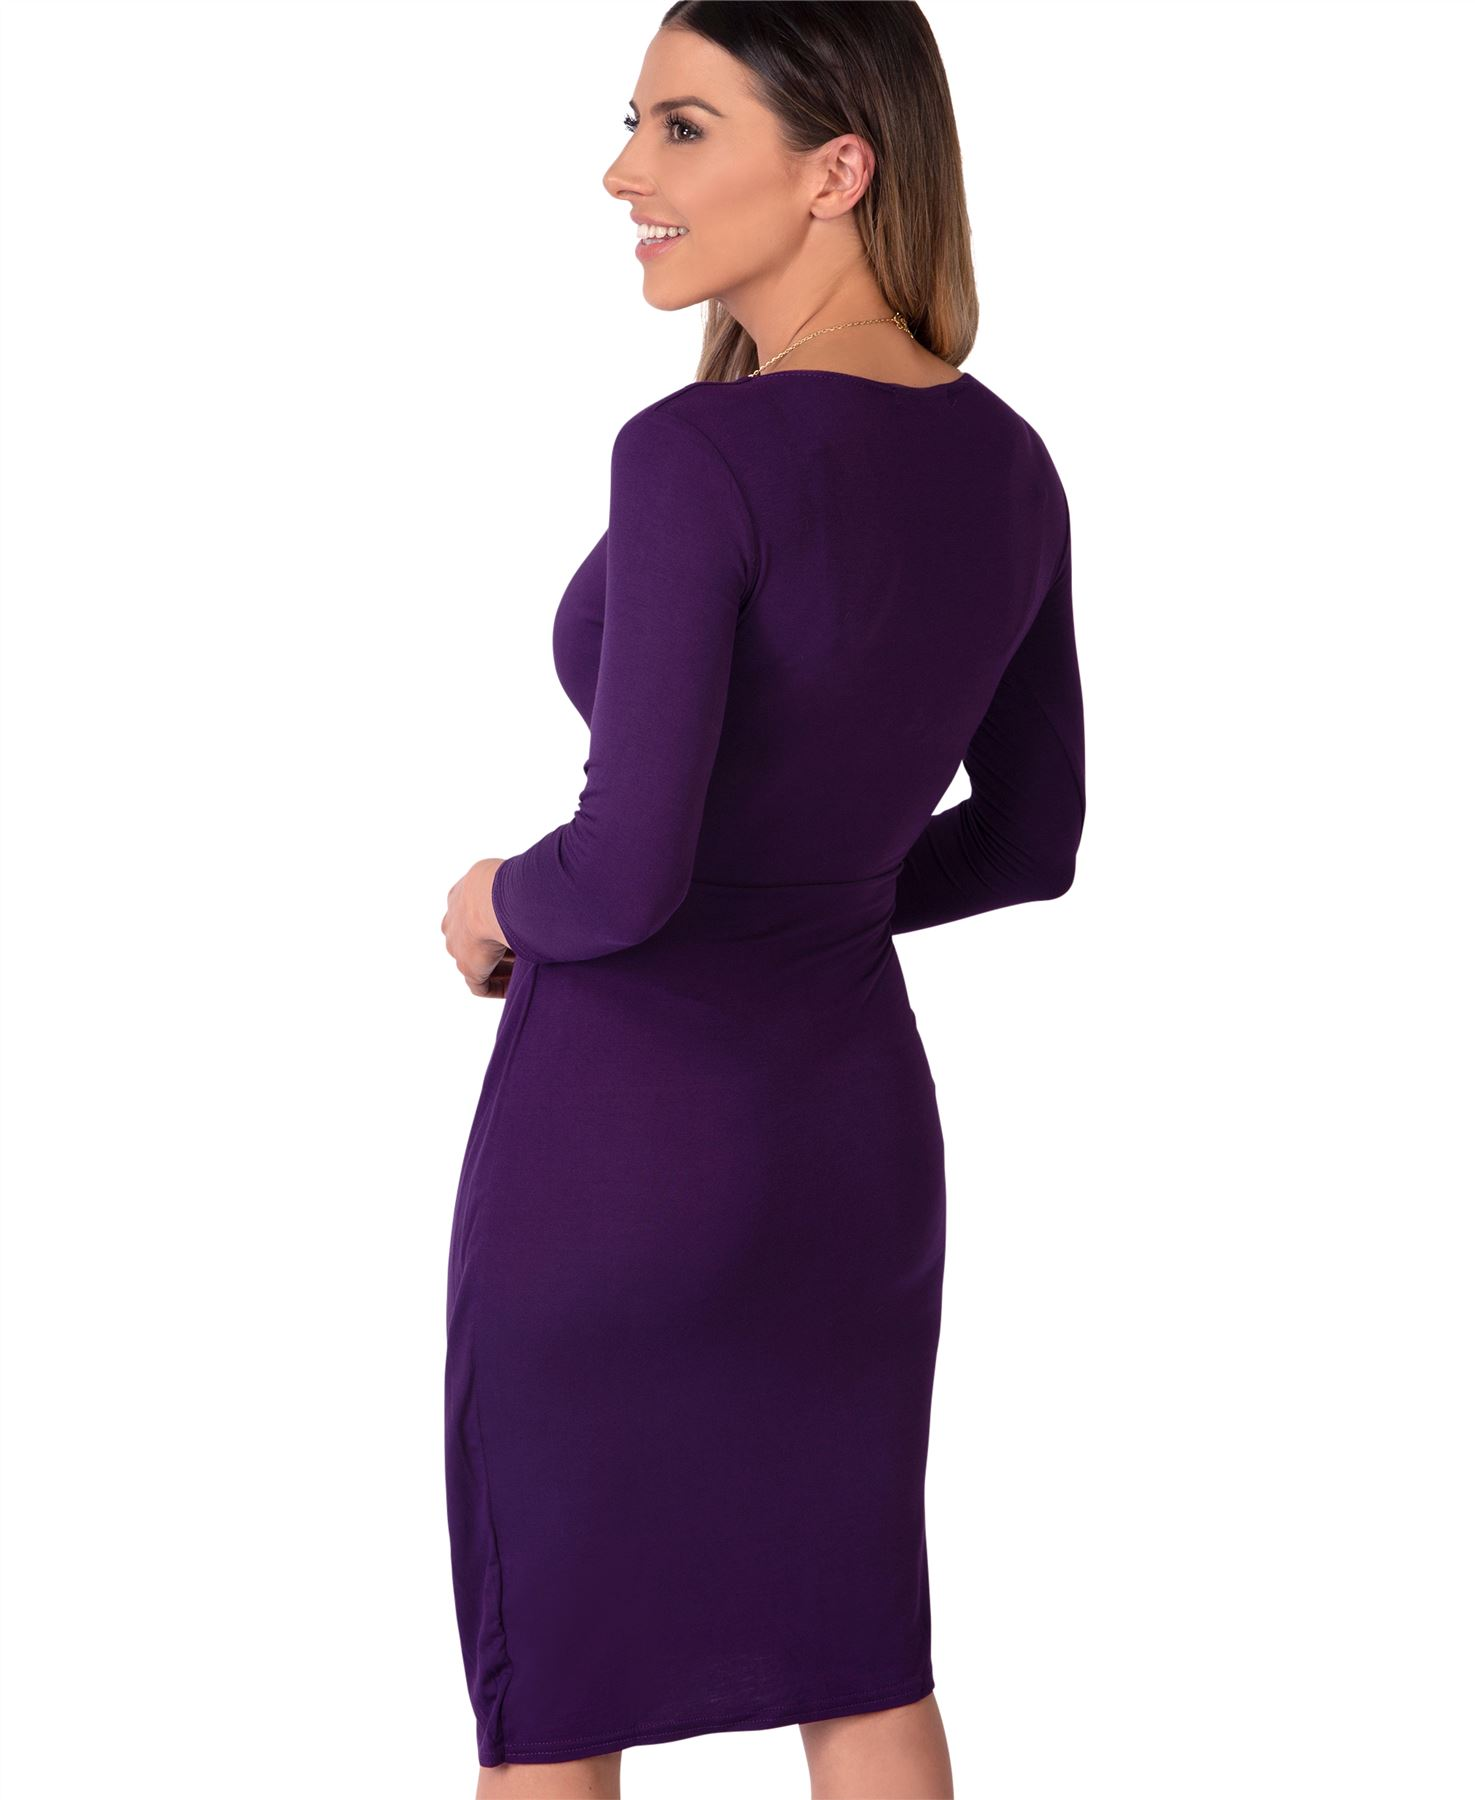 Womens-Ladies-Shift-Wrap-Dress-Midi-Knee-Long-Quarter-Sleeve-Sexy-Solid-Party thumbnail 22